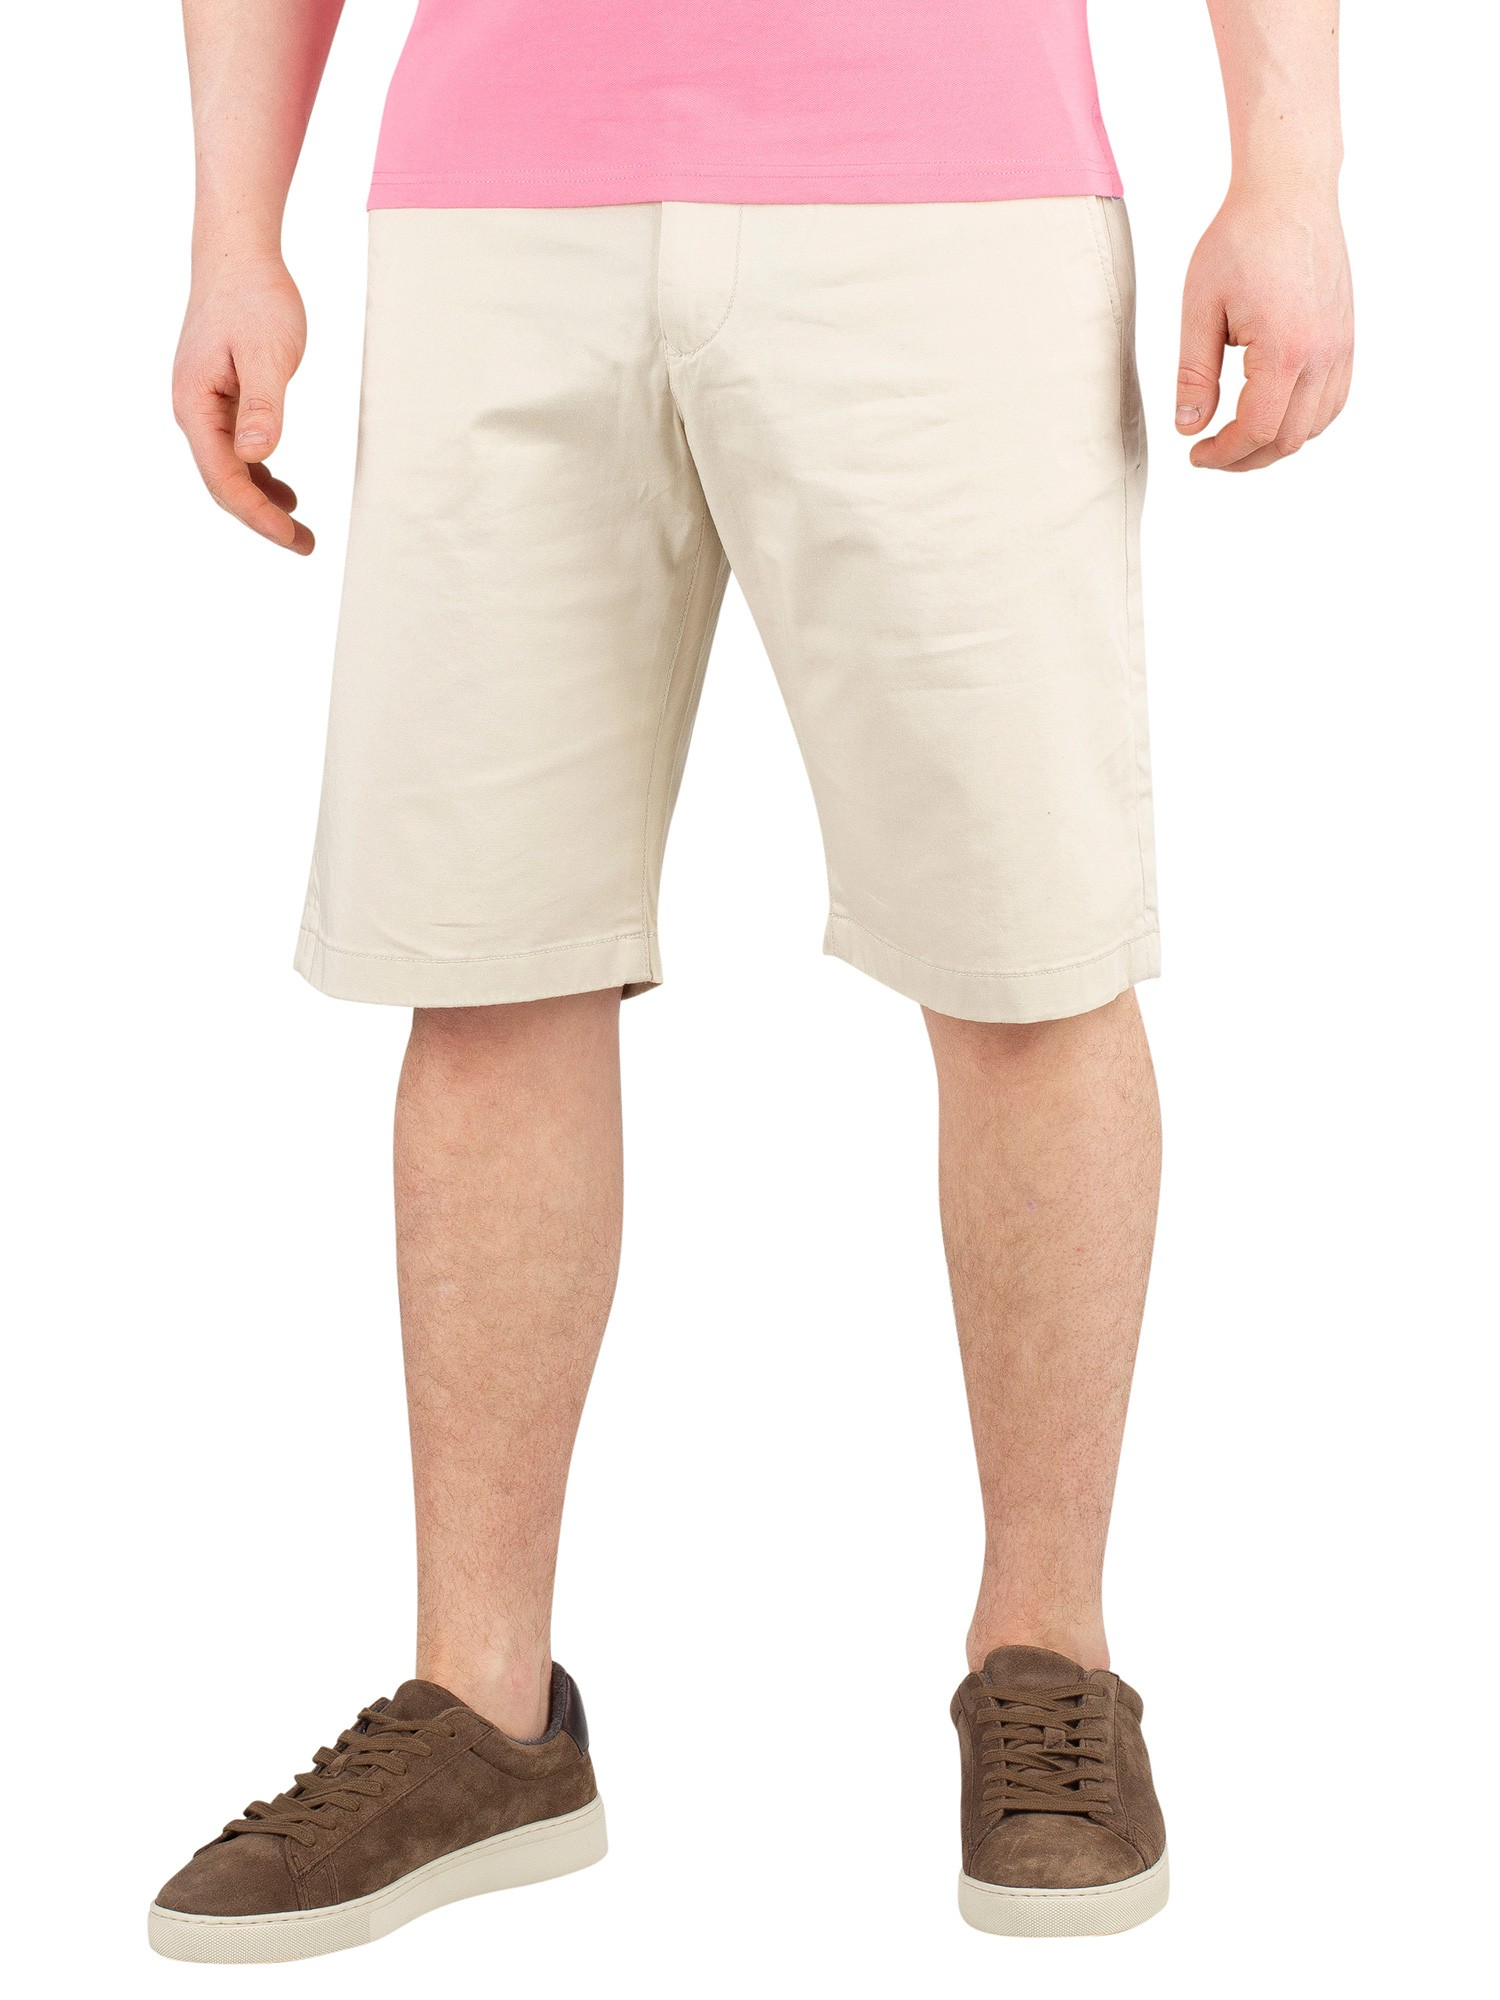 Details about GANT Mens Relaxed Twill Chino Shorts, Beige show original title